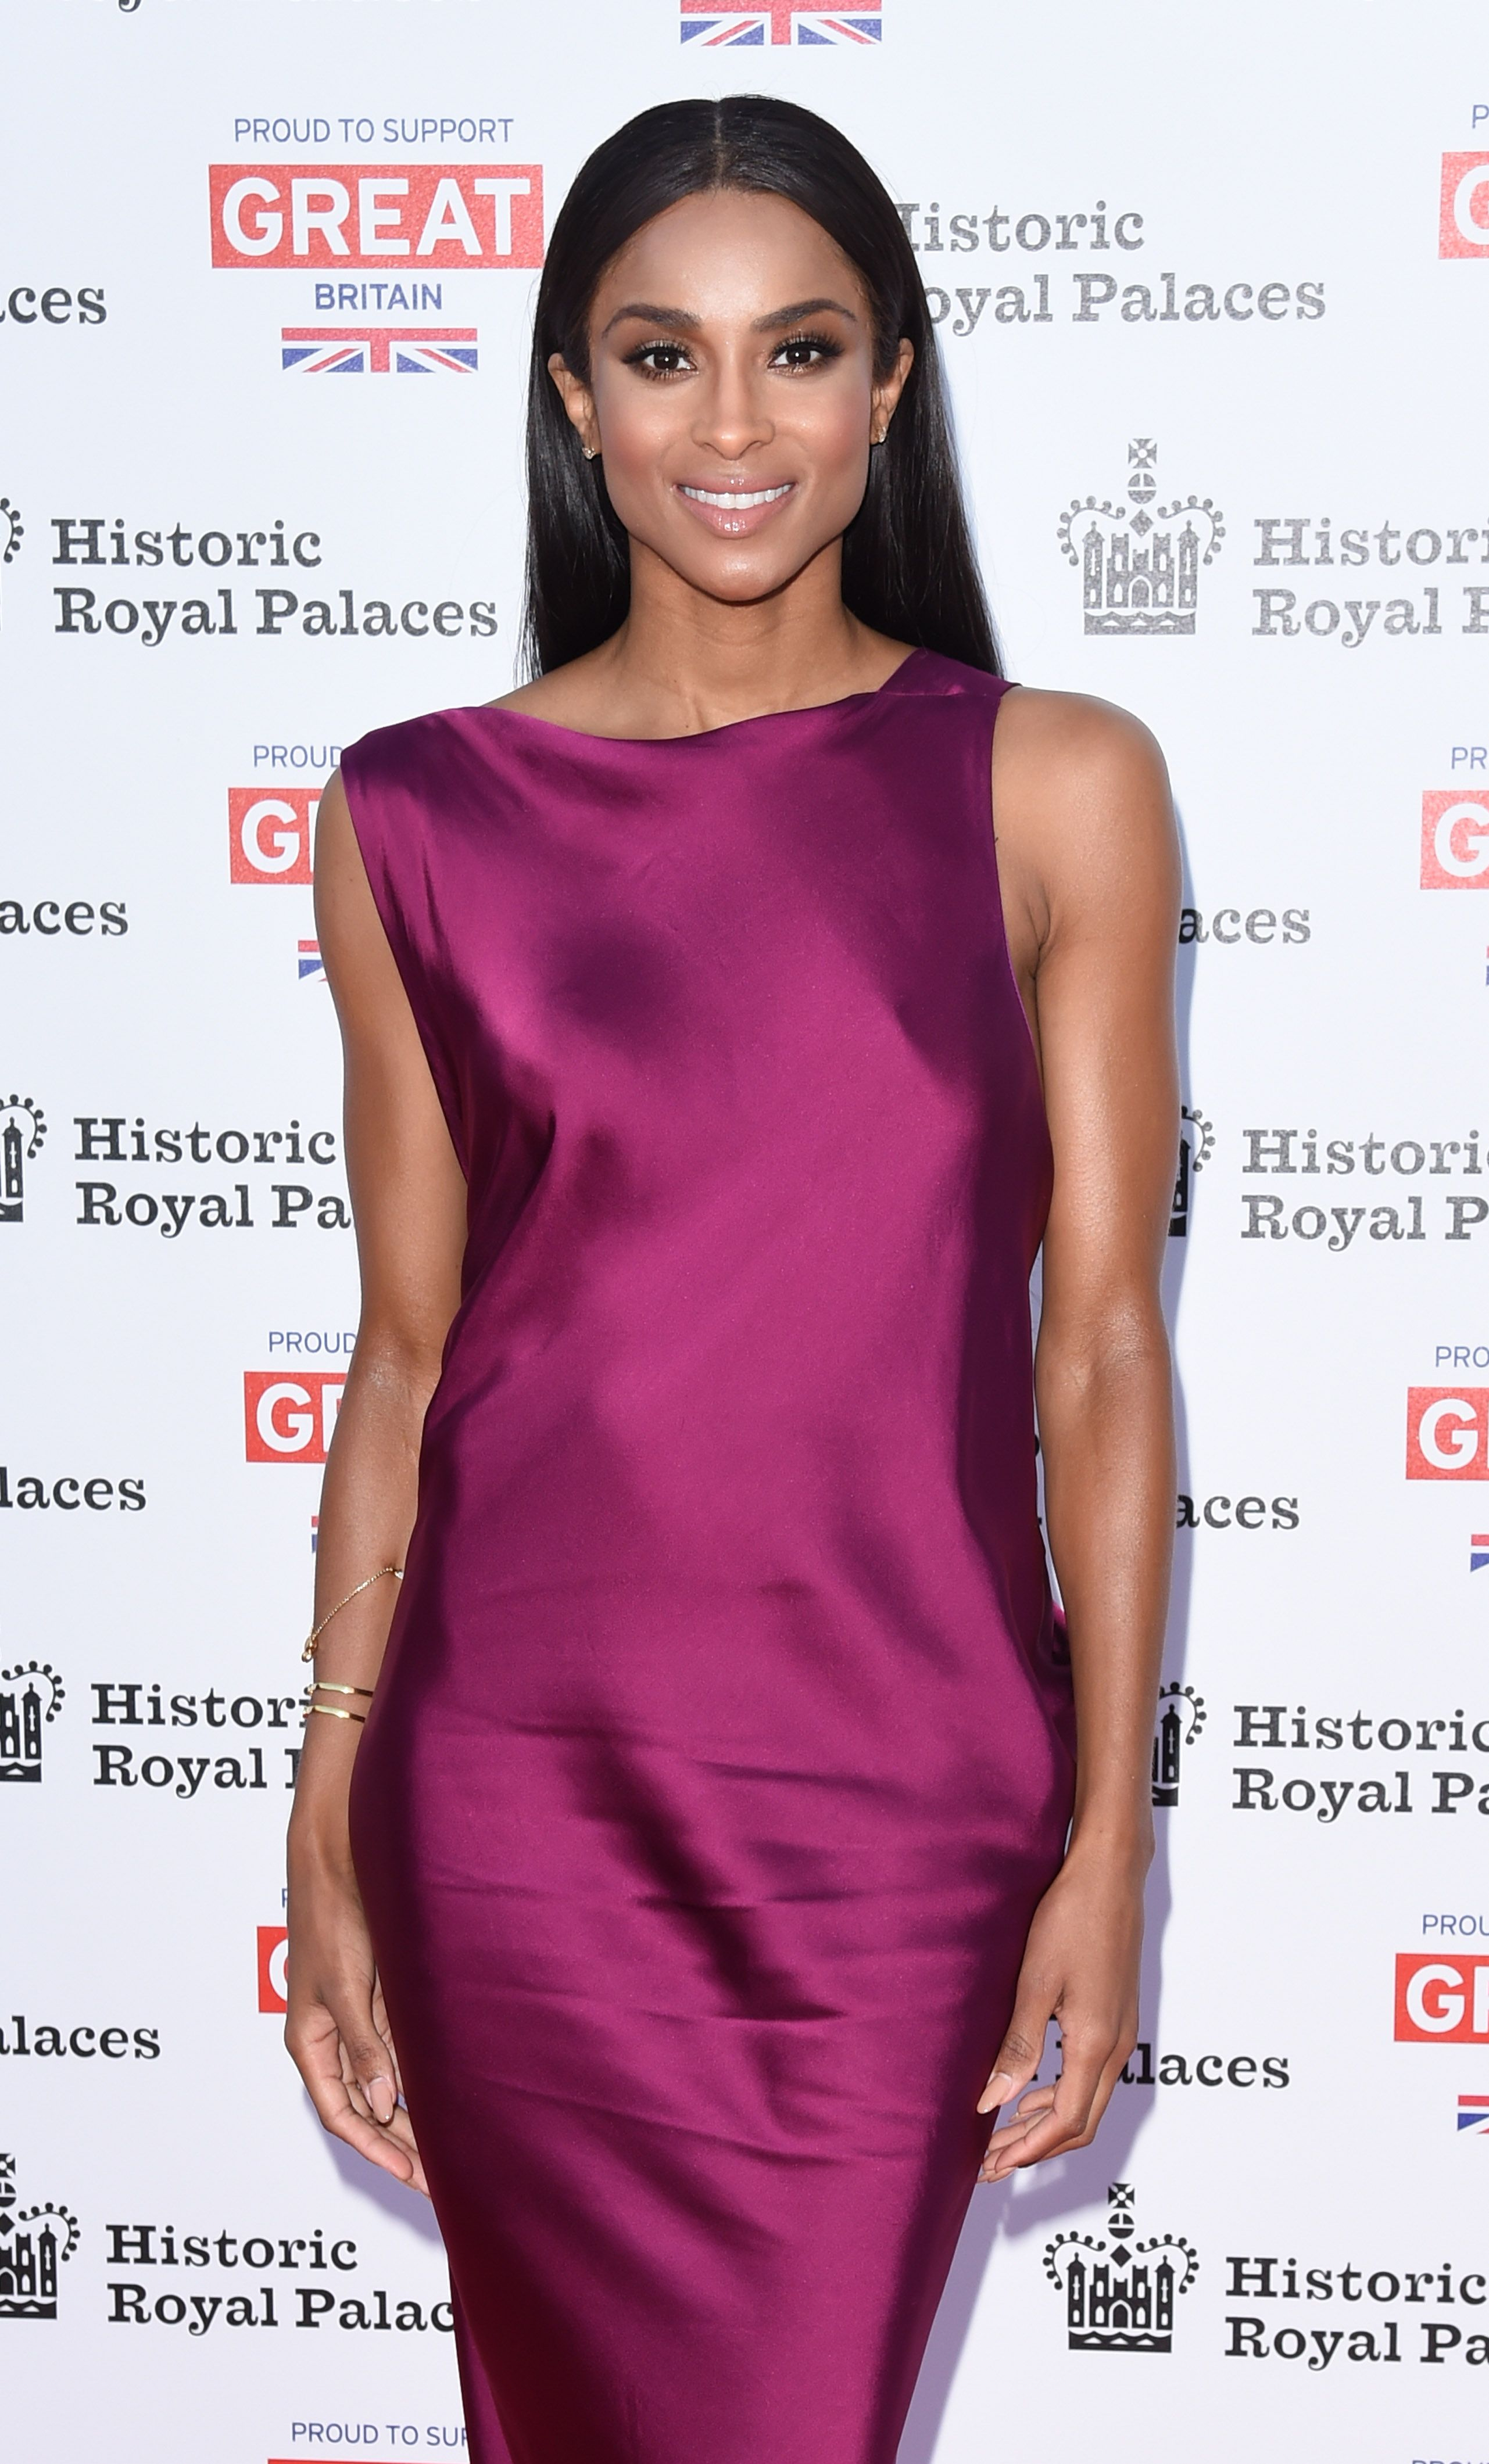 Ciara at the Kensington Palace on July 9, 2015 in London.   Photo: Getty Images